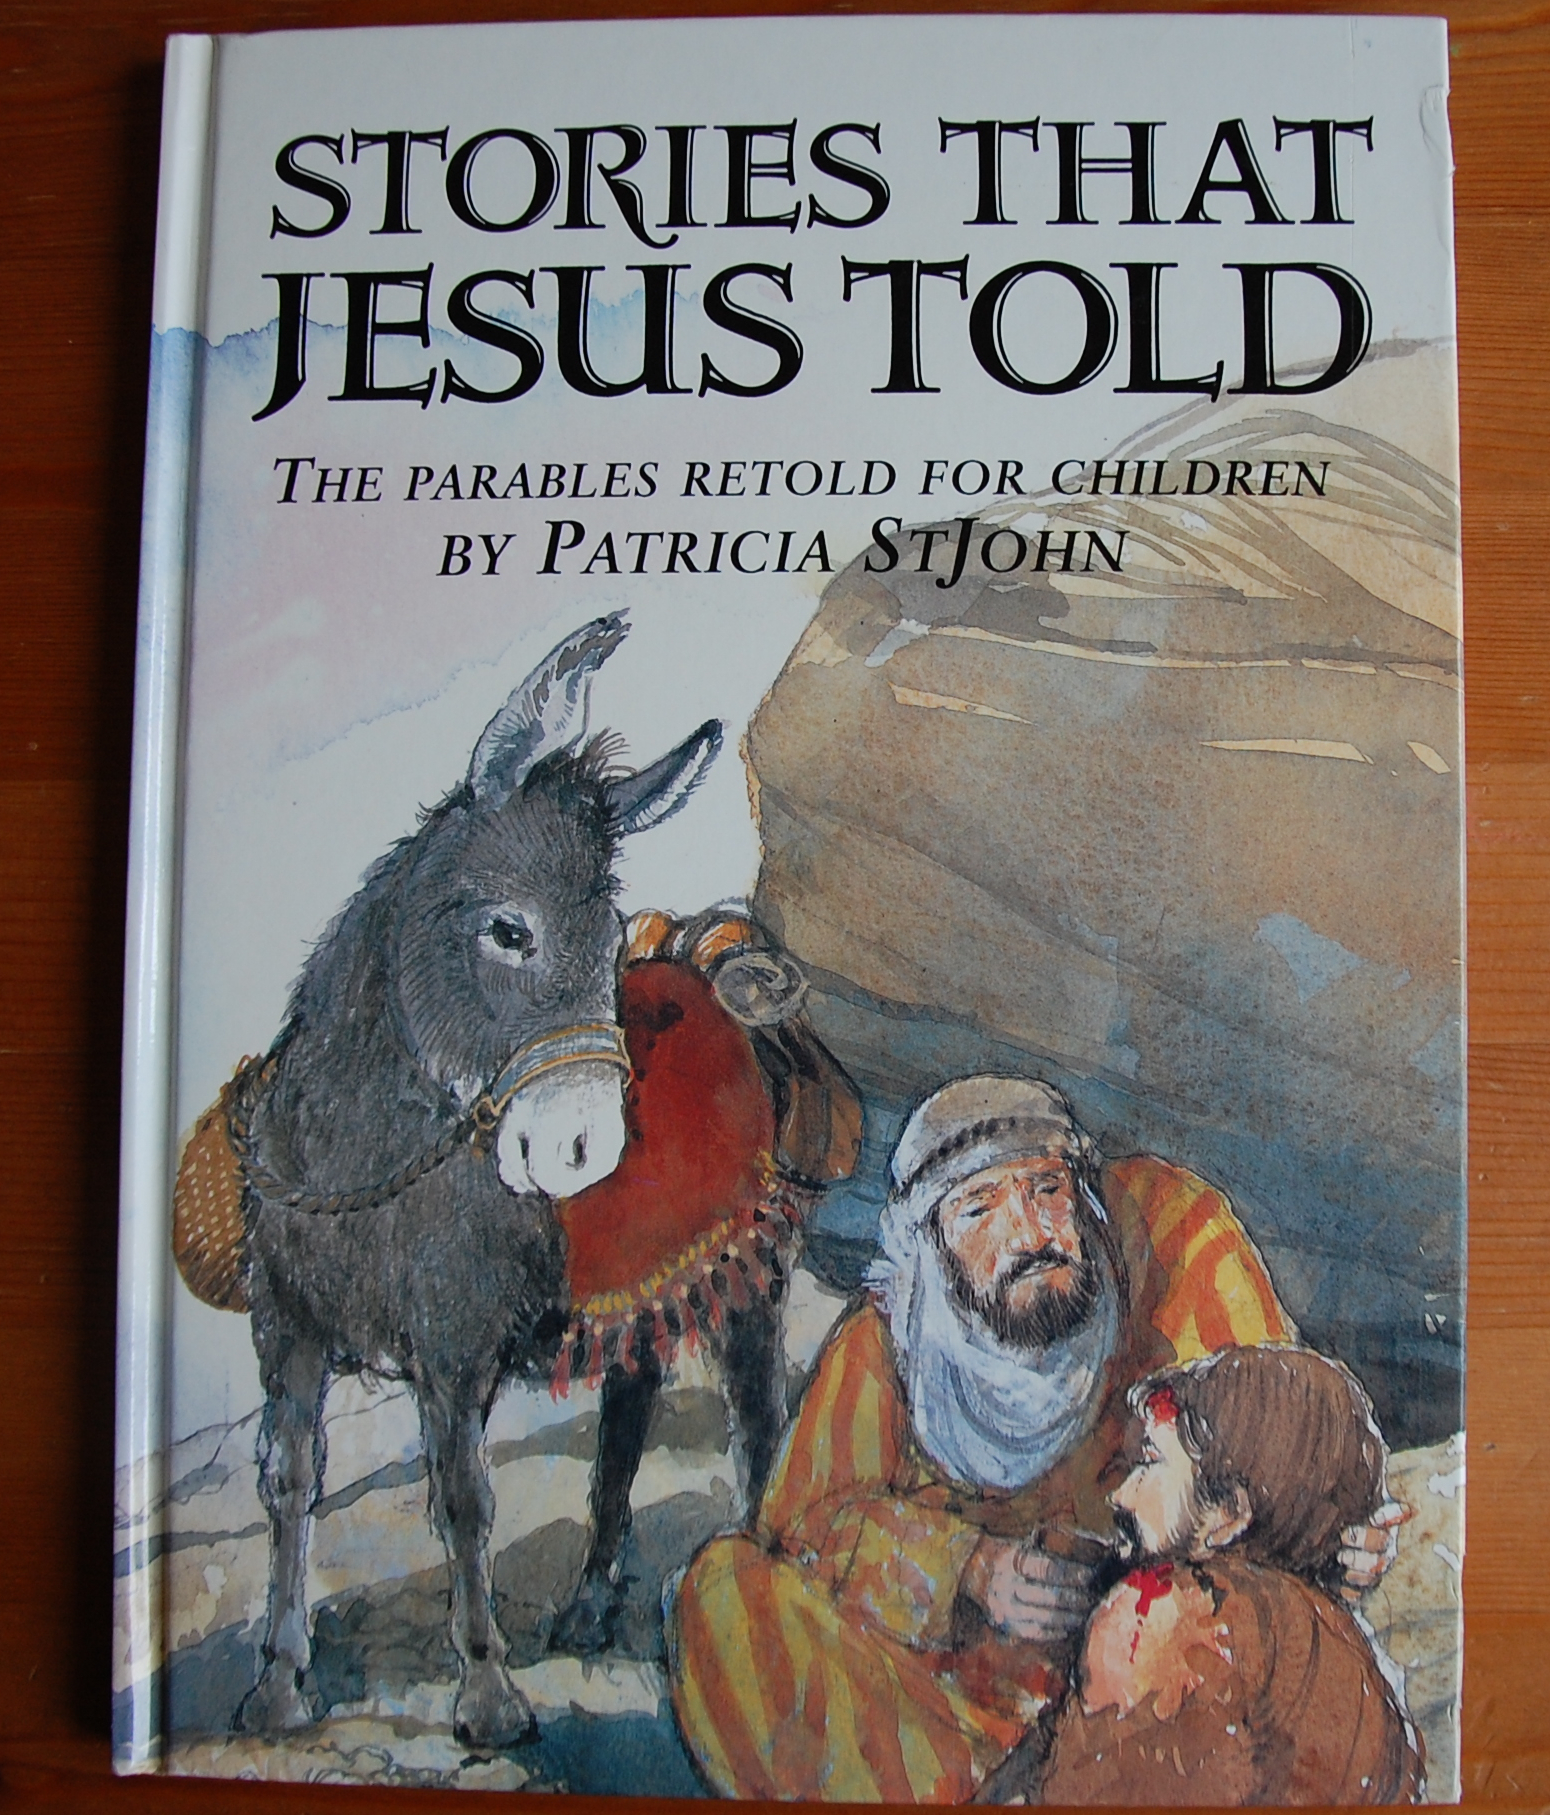 Stories That Jesus Told COVER